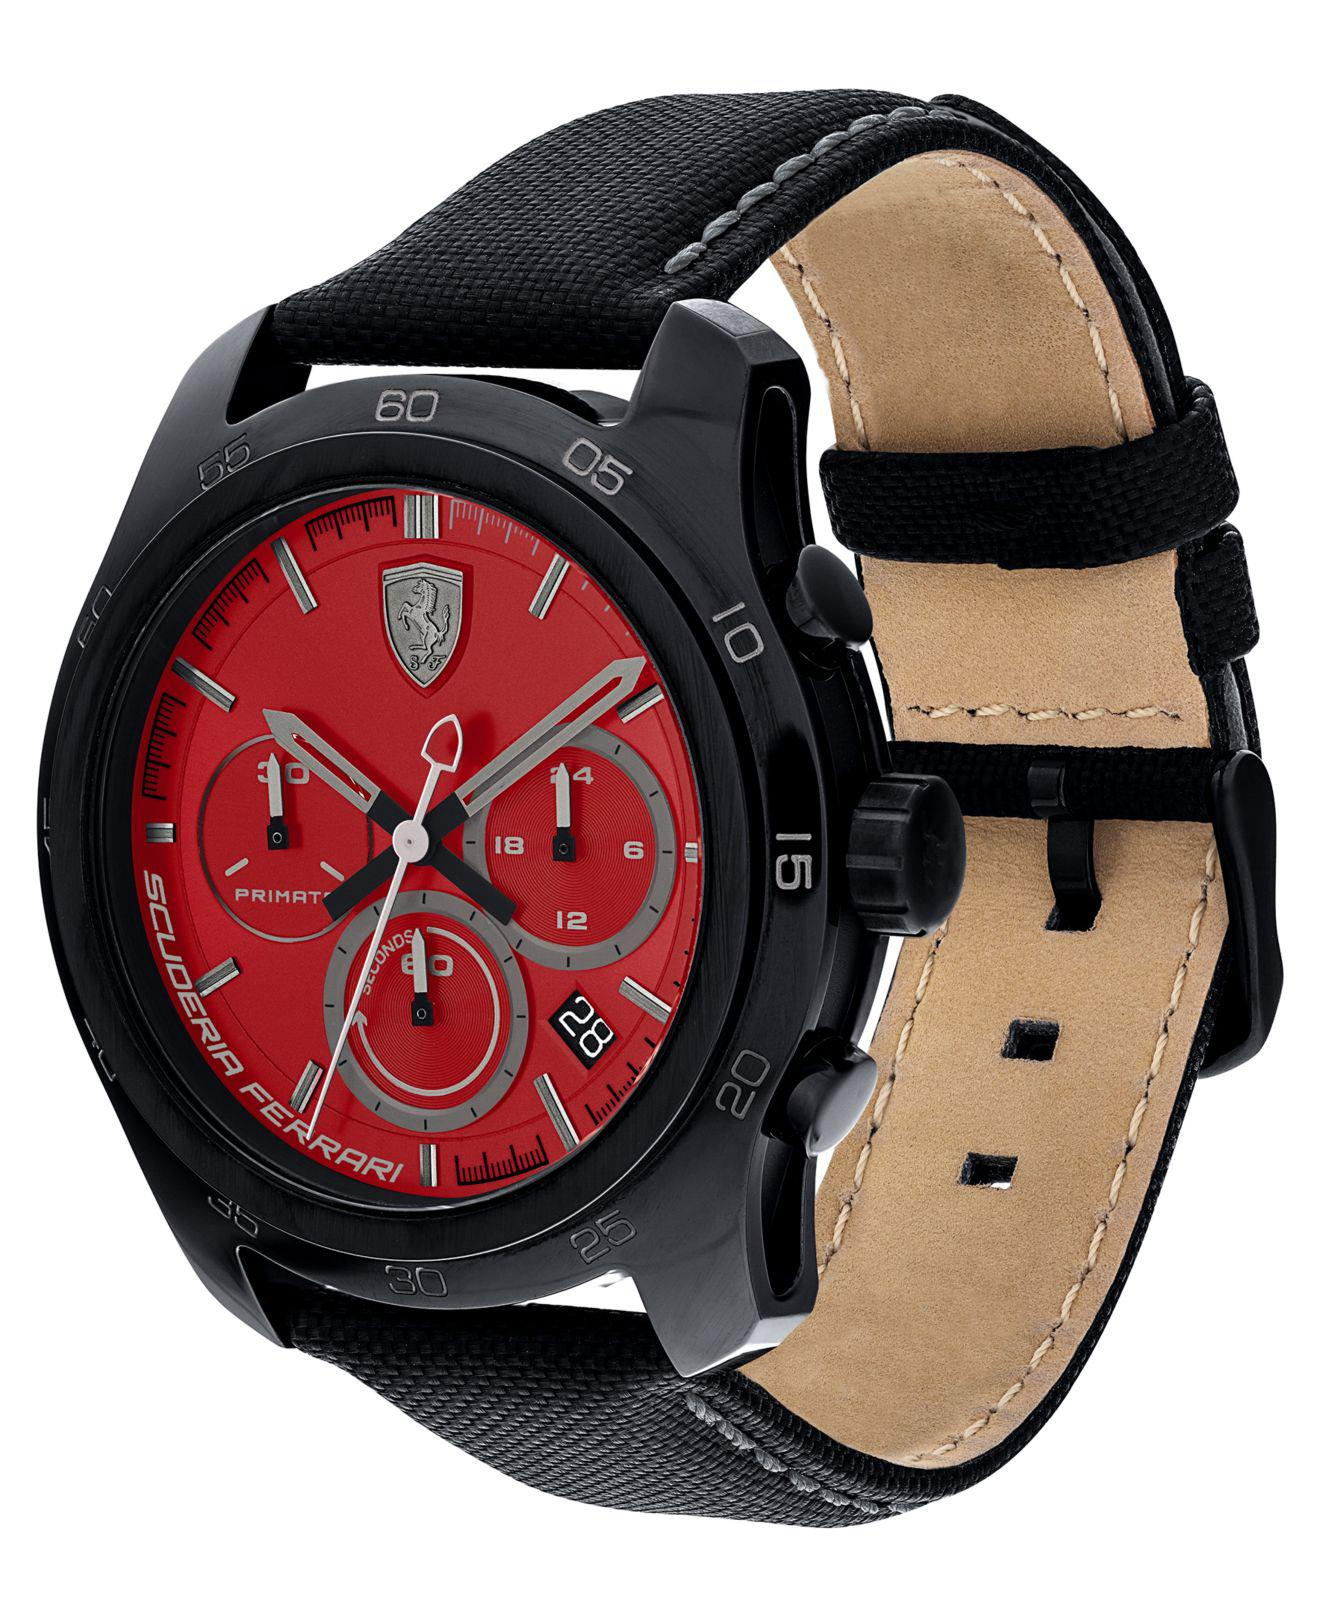 Imagine 1128.0 lei - Ceas Barbati Scuderia Ferrari Watches Model Primato 830447